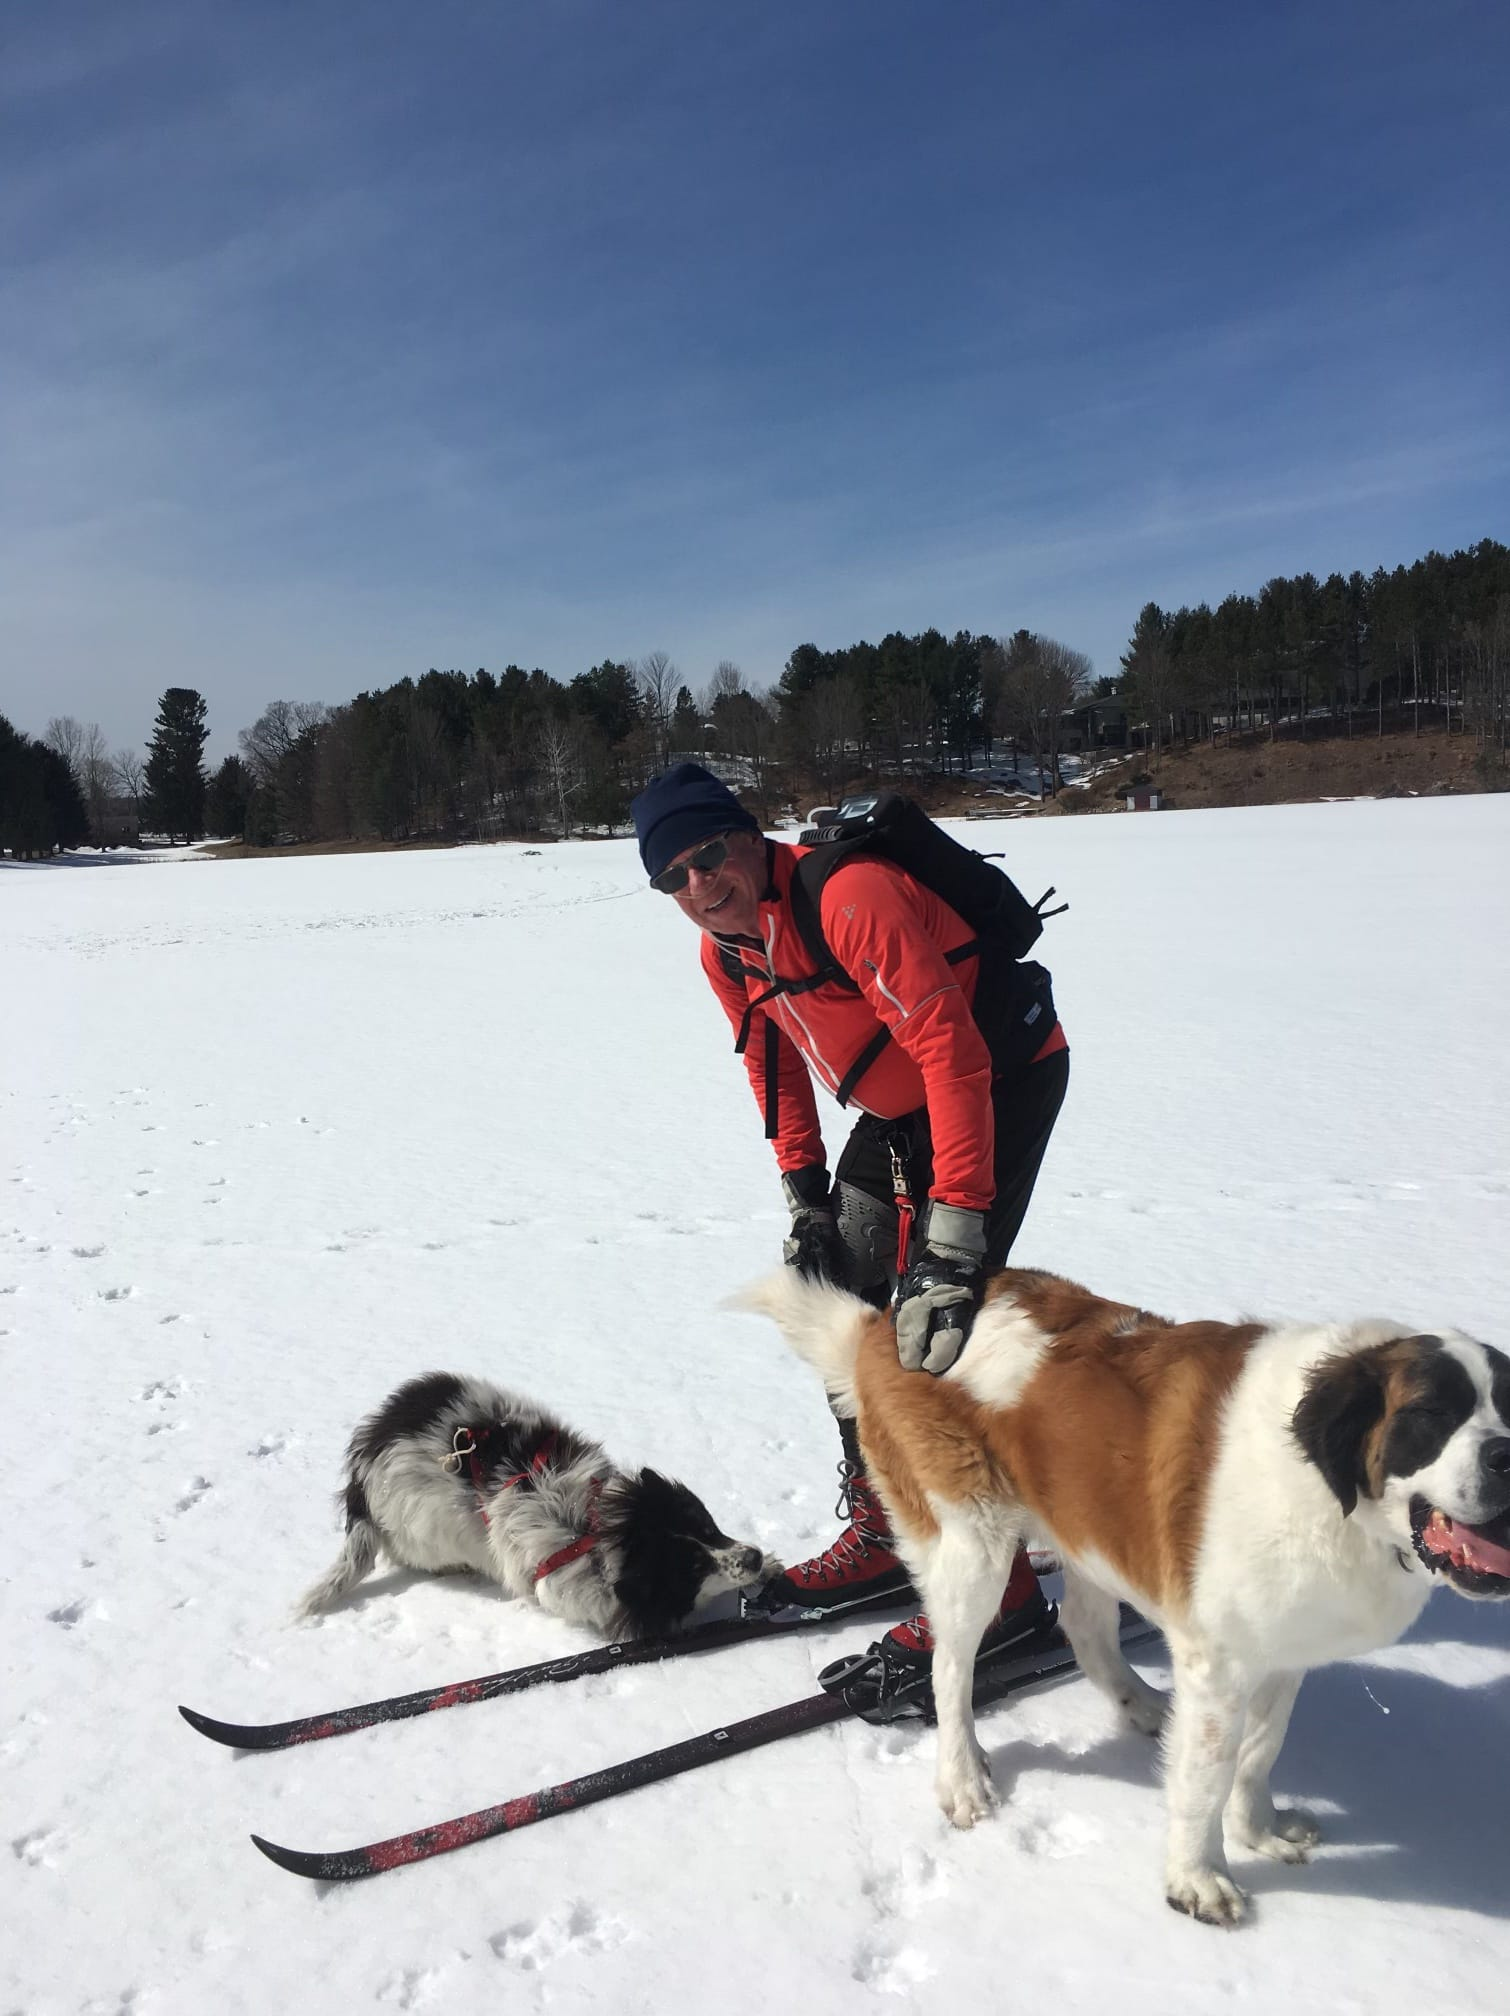 Man skiing with two dogs